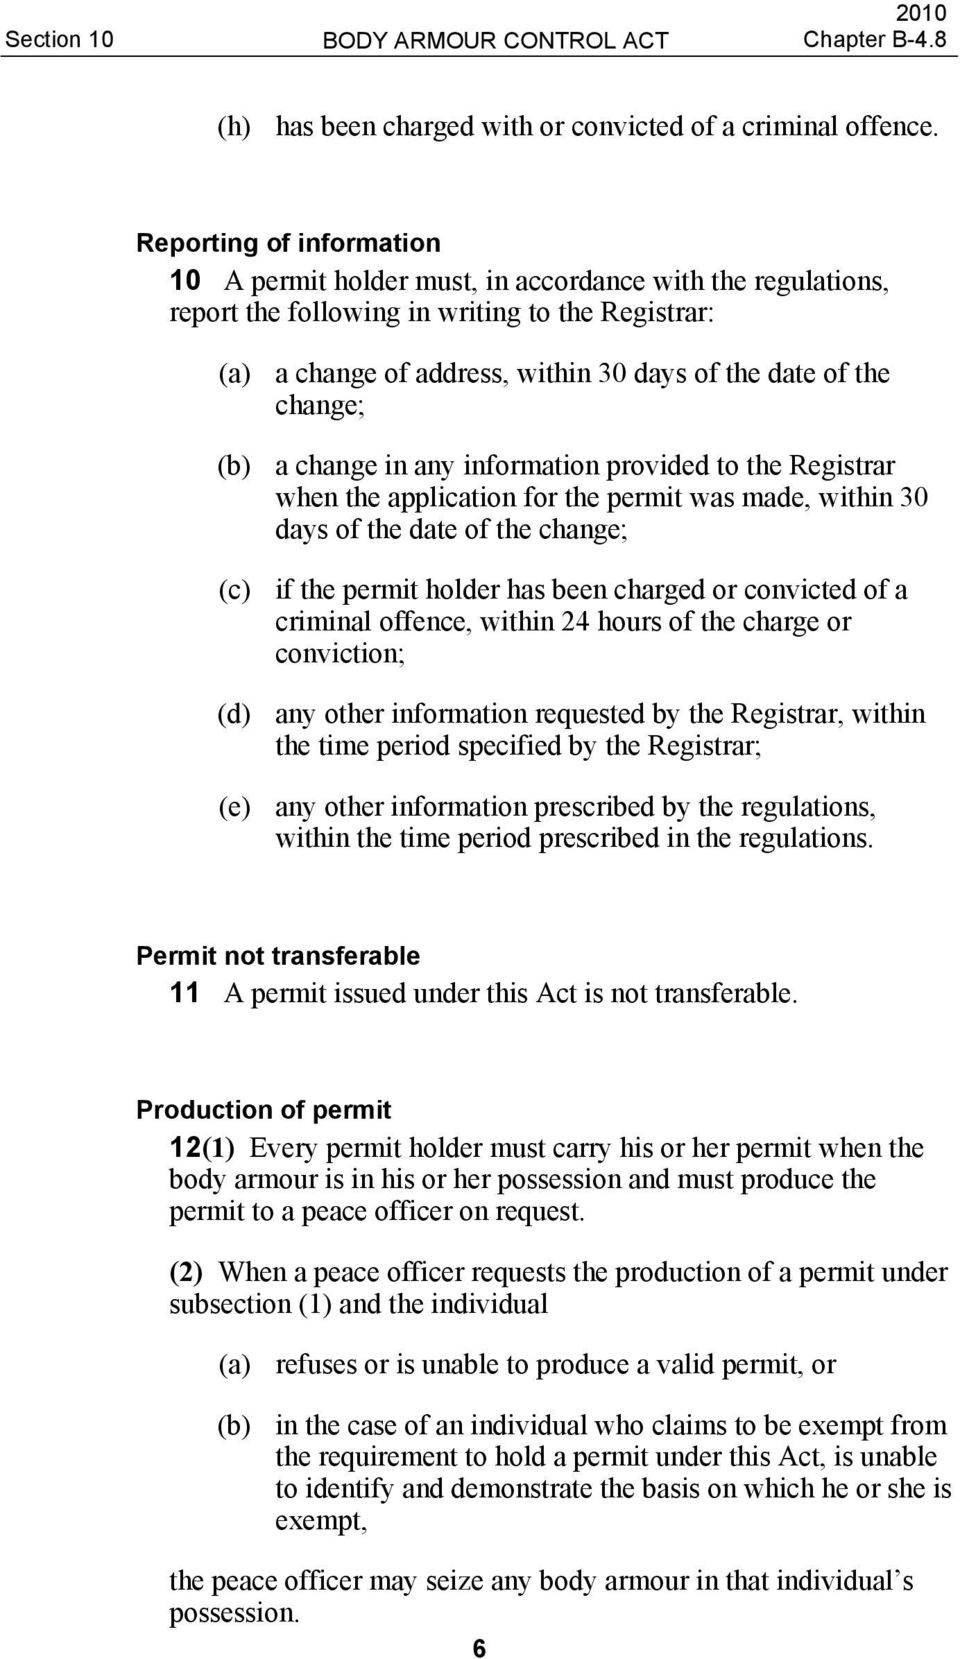 change; (b) a change in any information provided to the Registrar when the application for the permit was made, within 30 days of the date of the change; (c) if the permit holder has been charged or